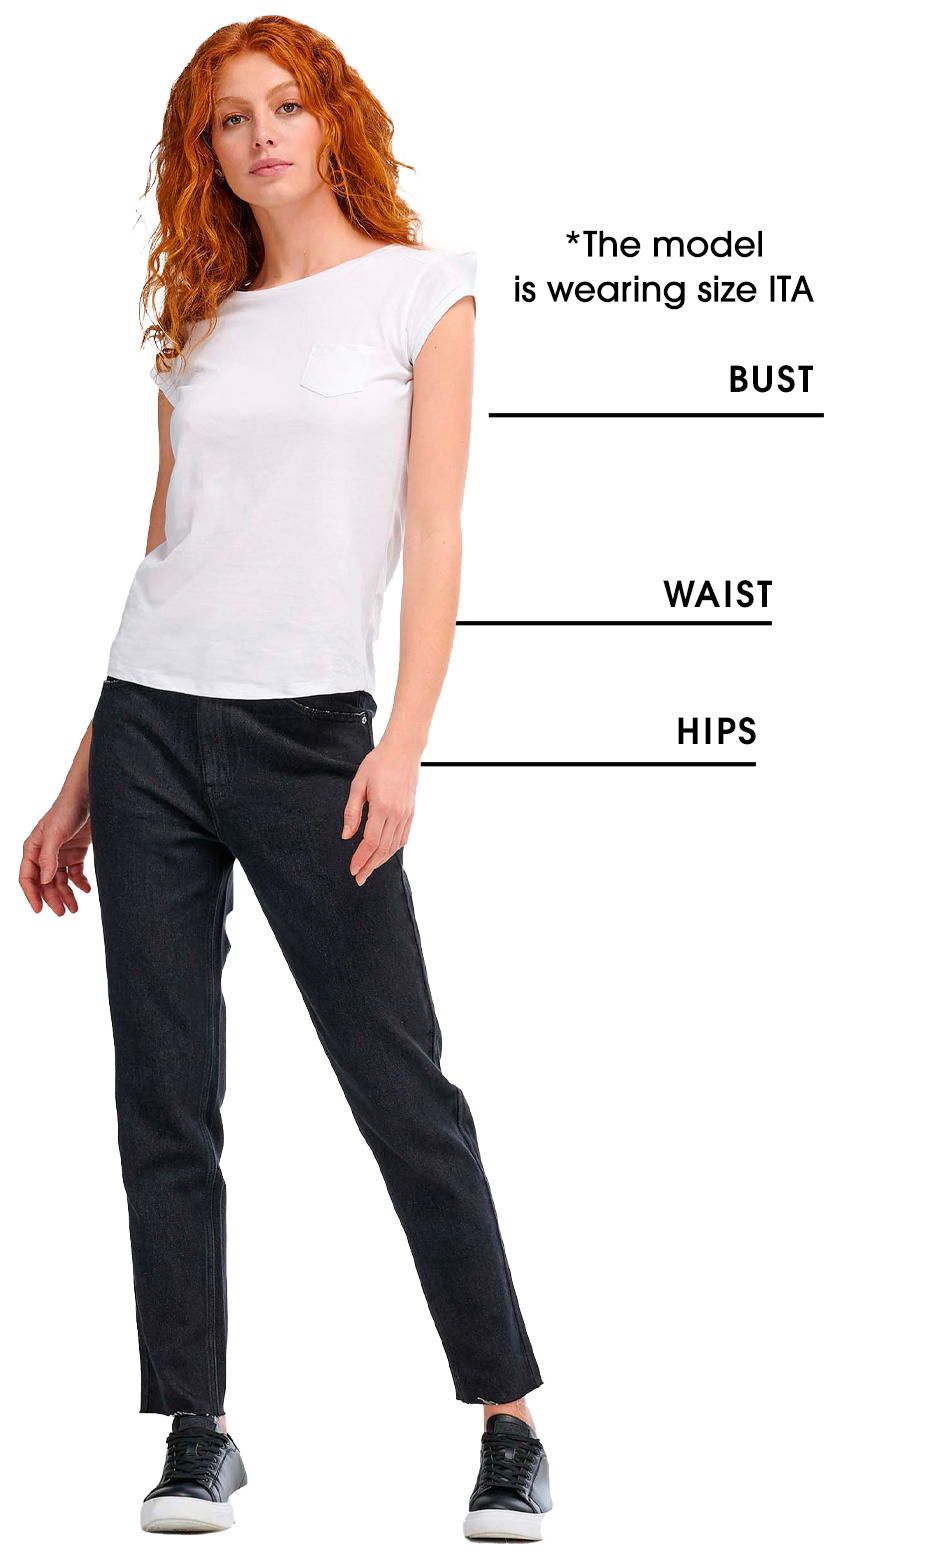 Women's Casual Sizing Chart